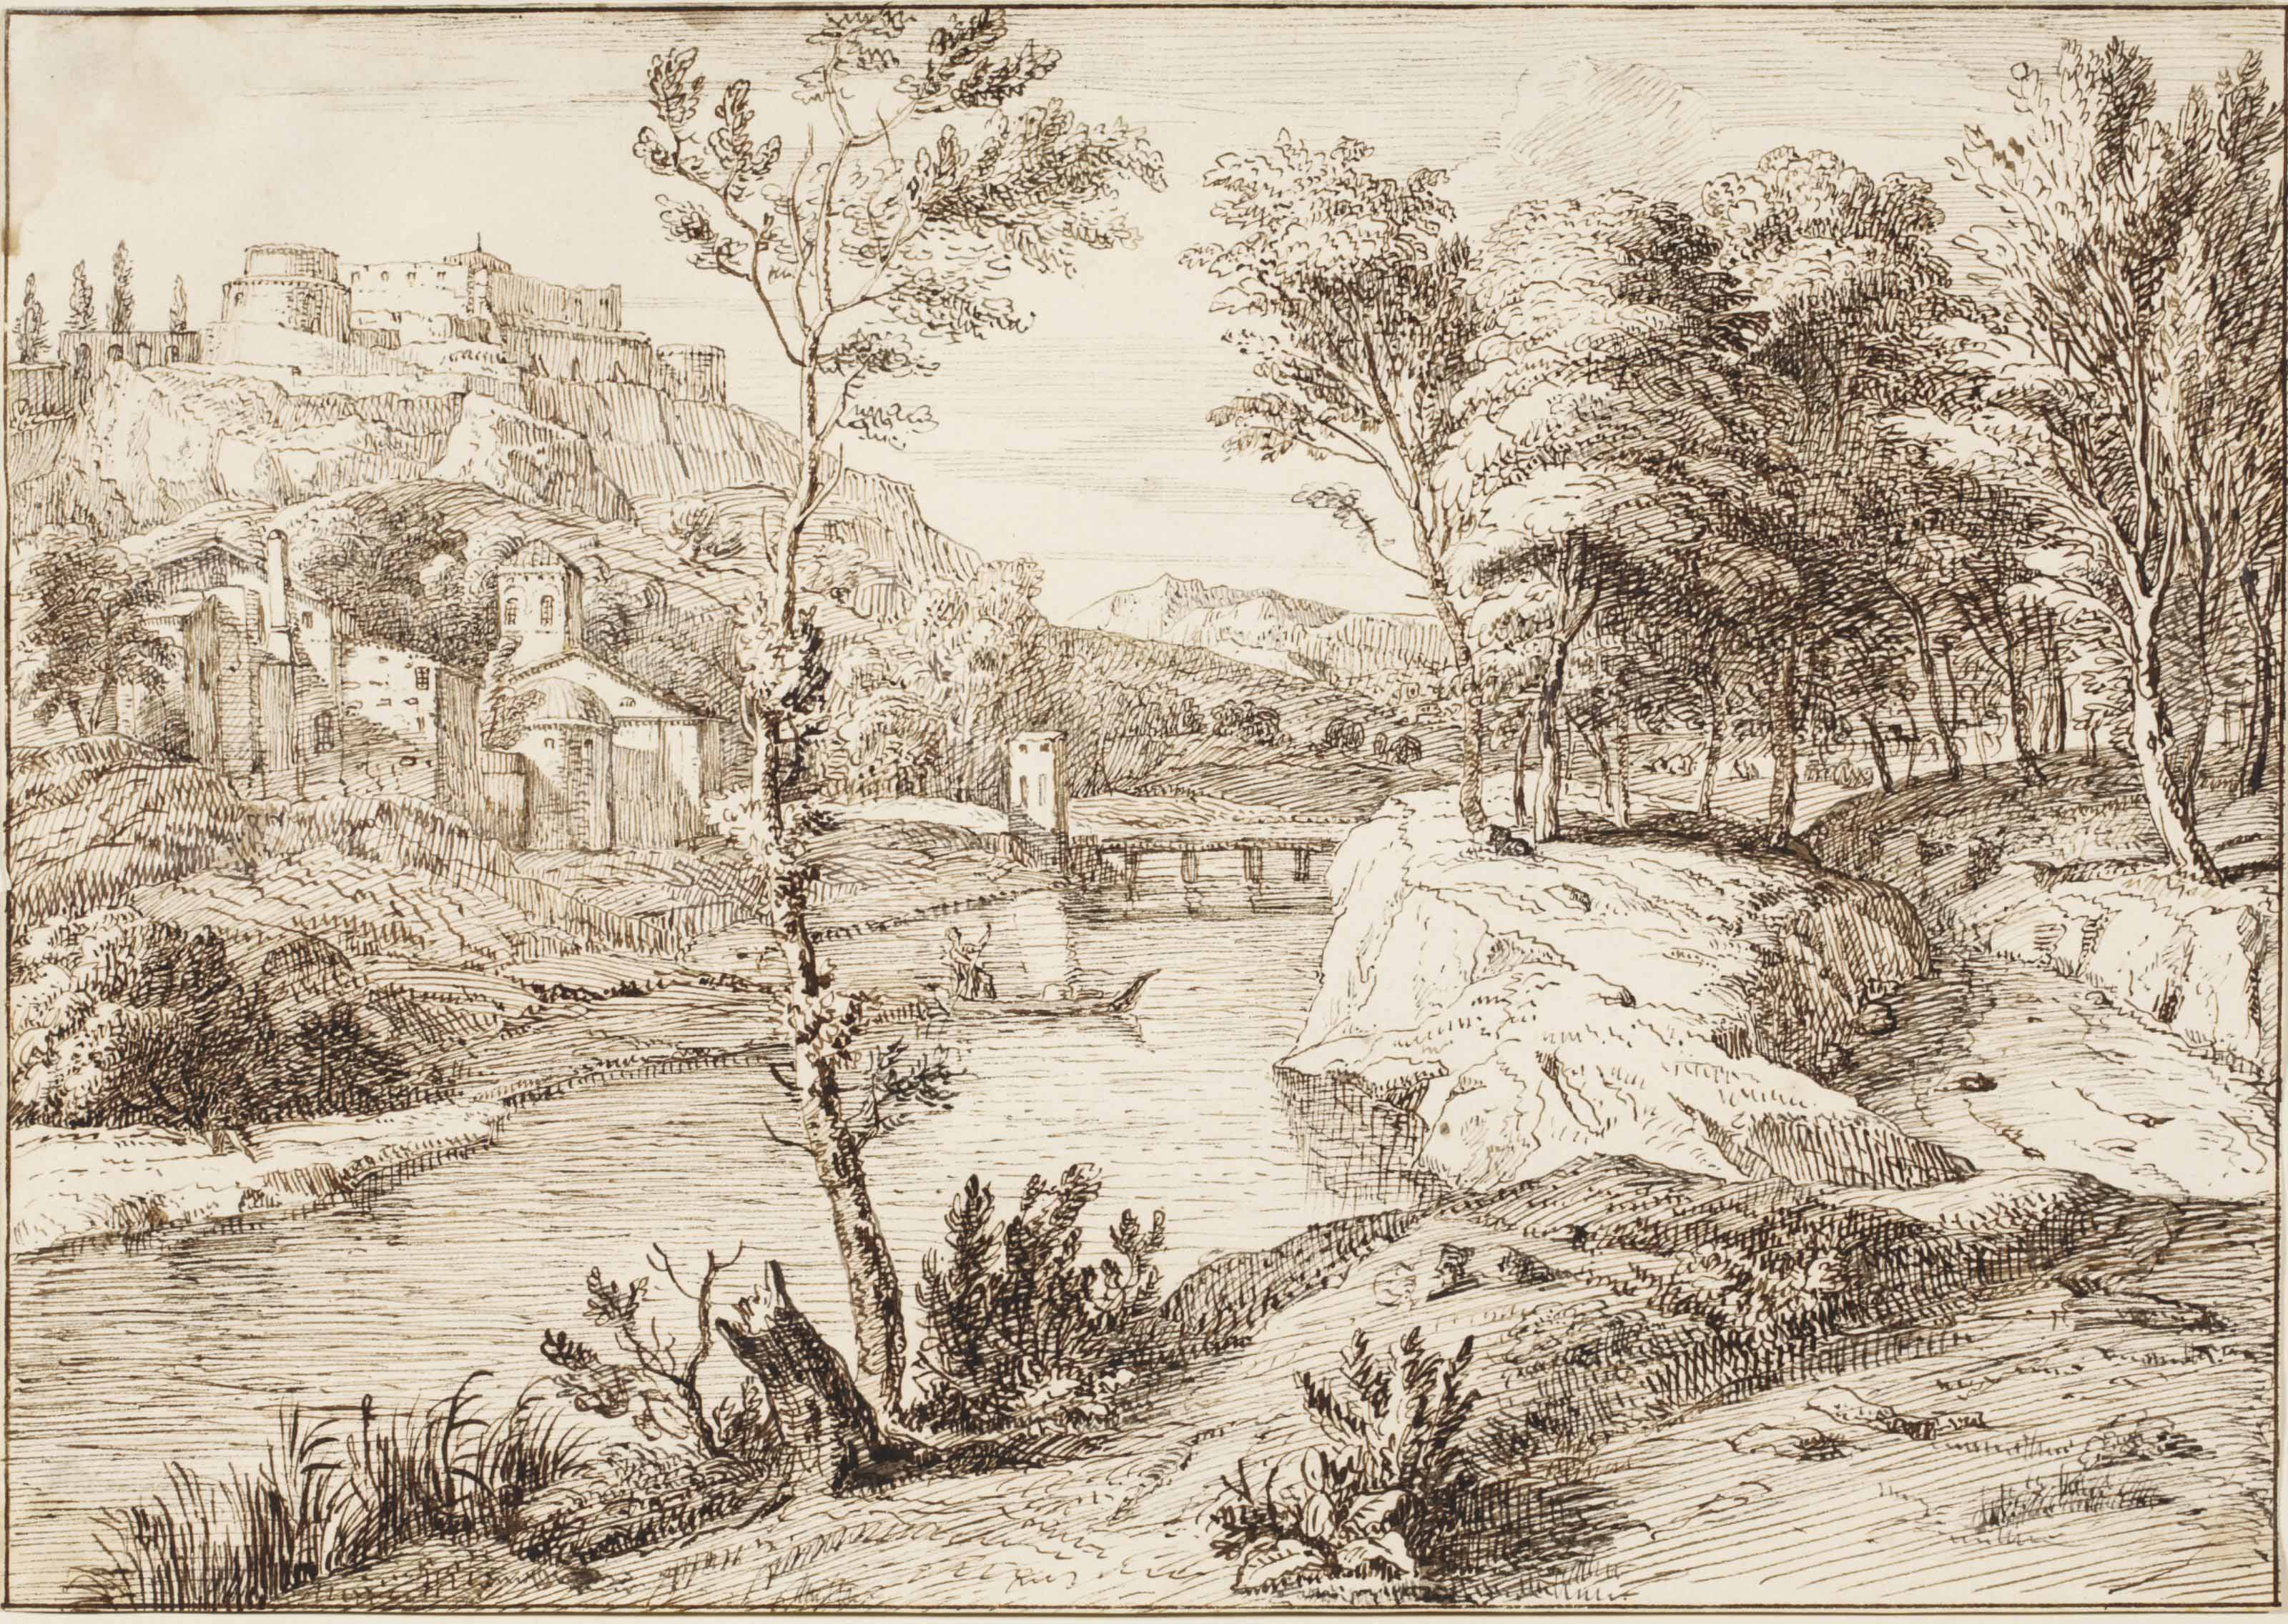 An Italianate wooded river landscape with a castle on a hill